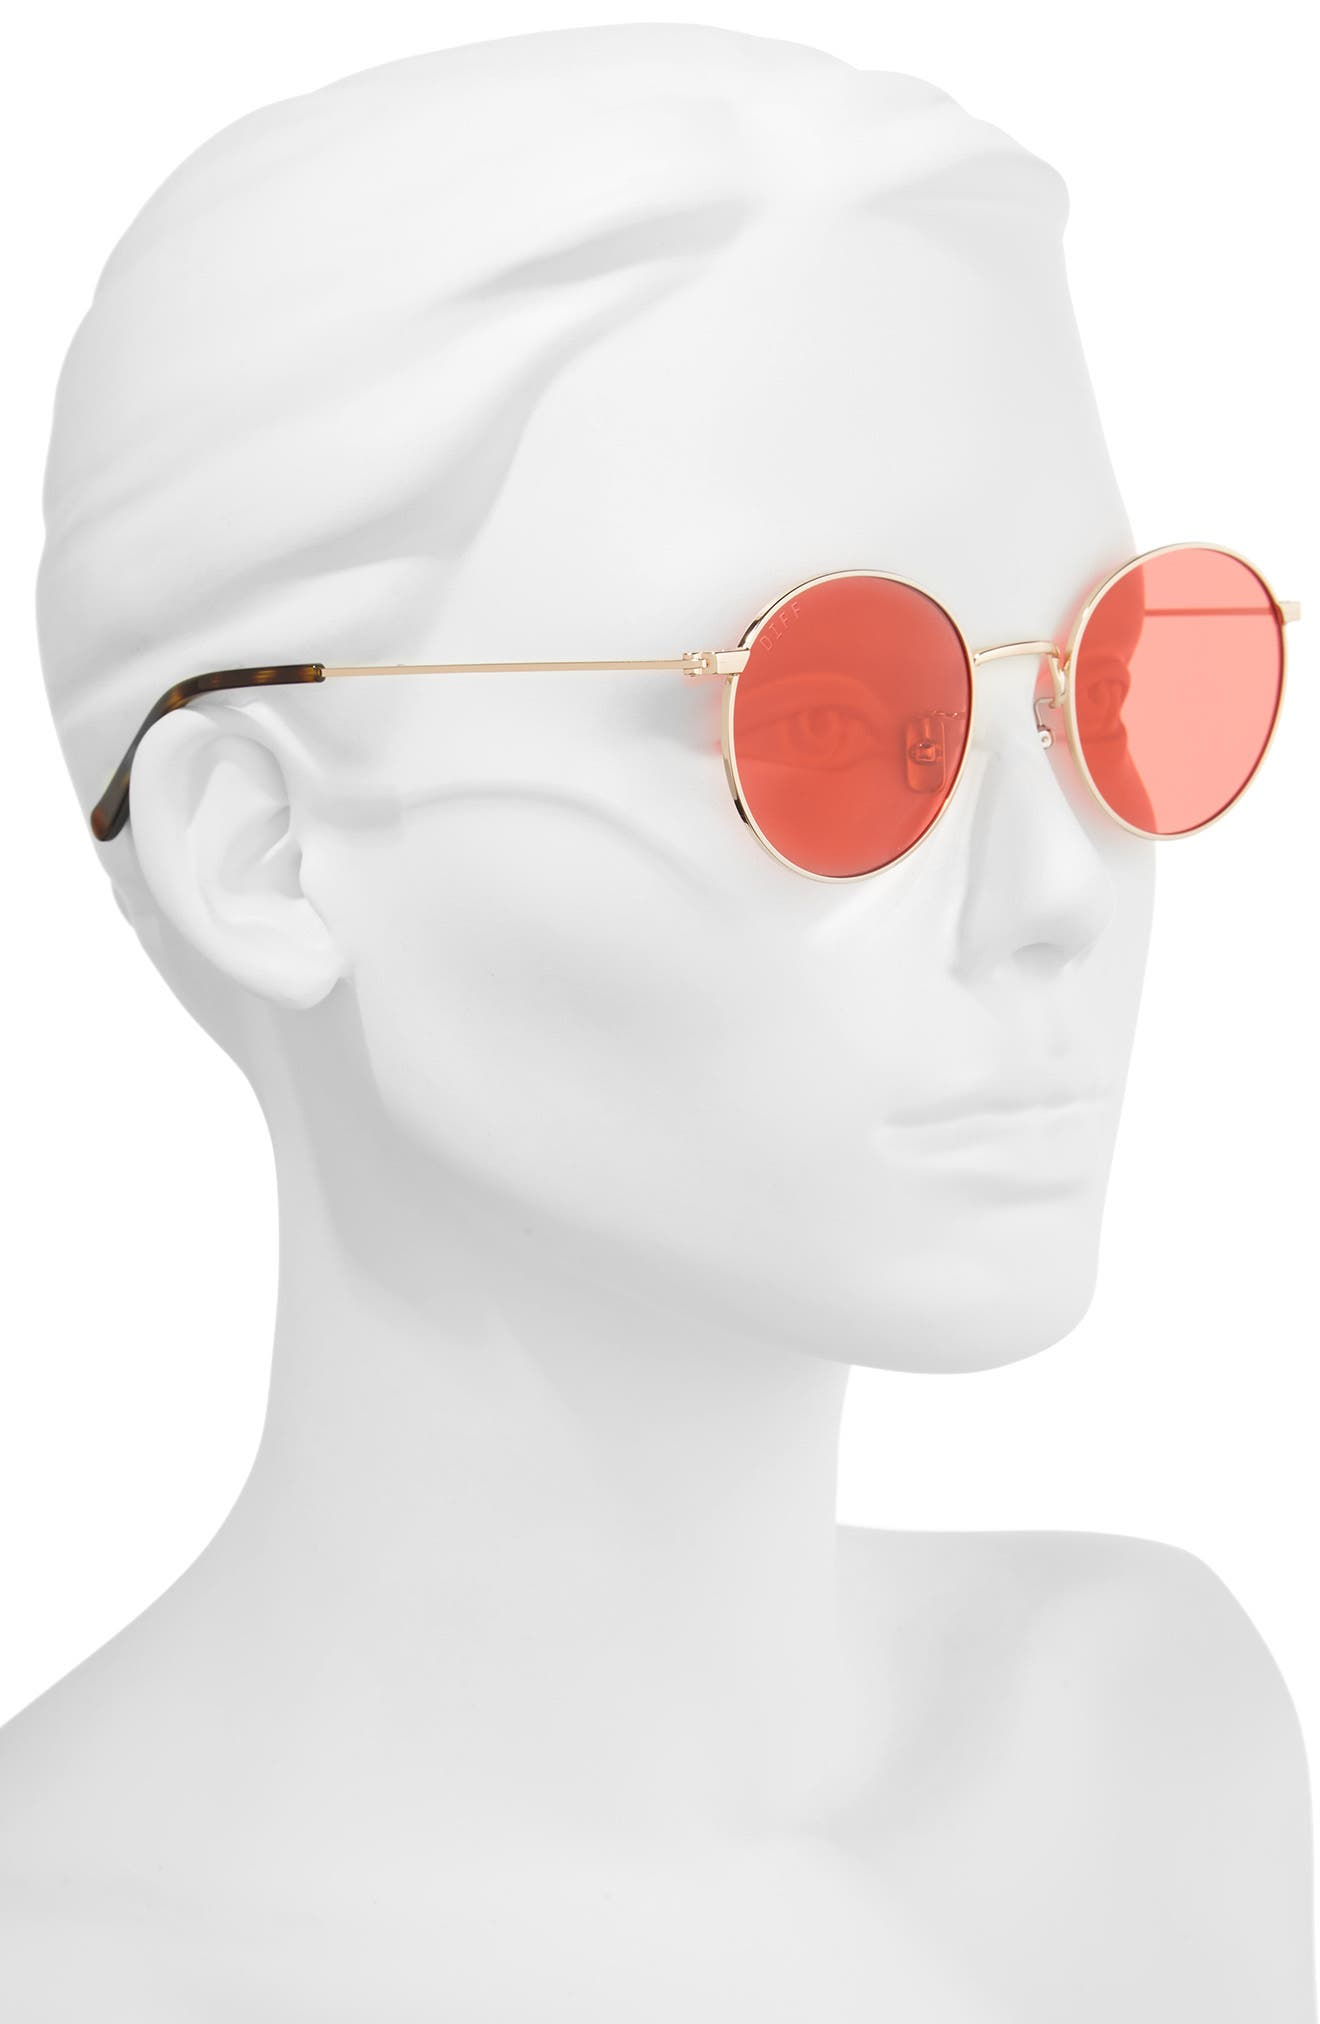 Daisy 51mm Round Sunglasses,                             Alternate thumbnail 2, color,                             Gold/ Red